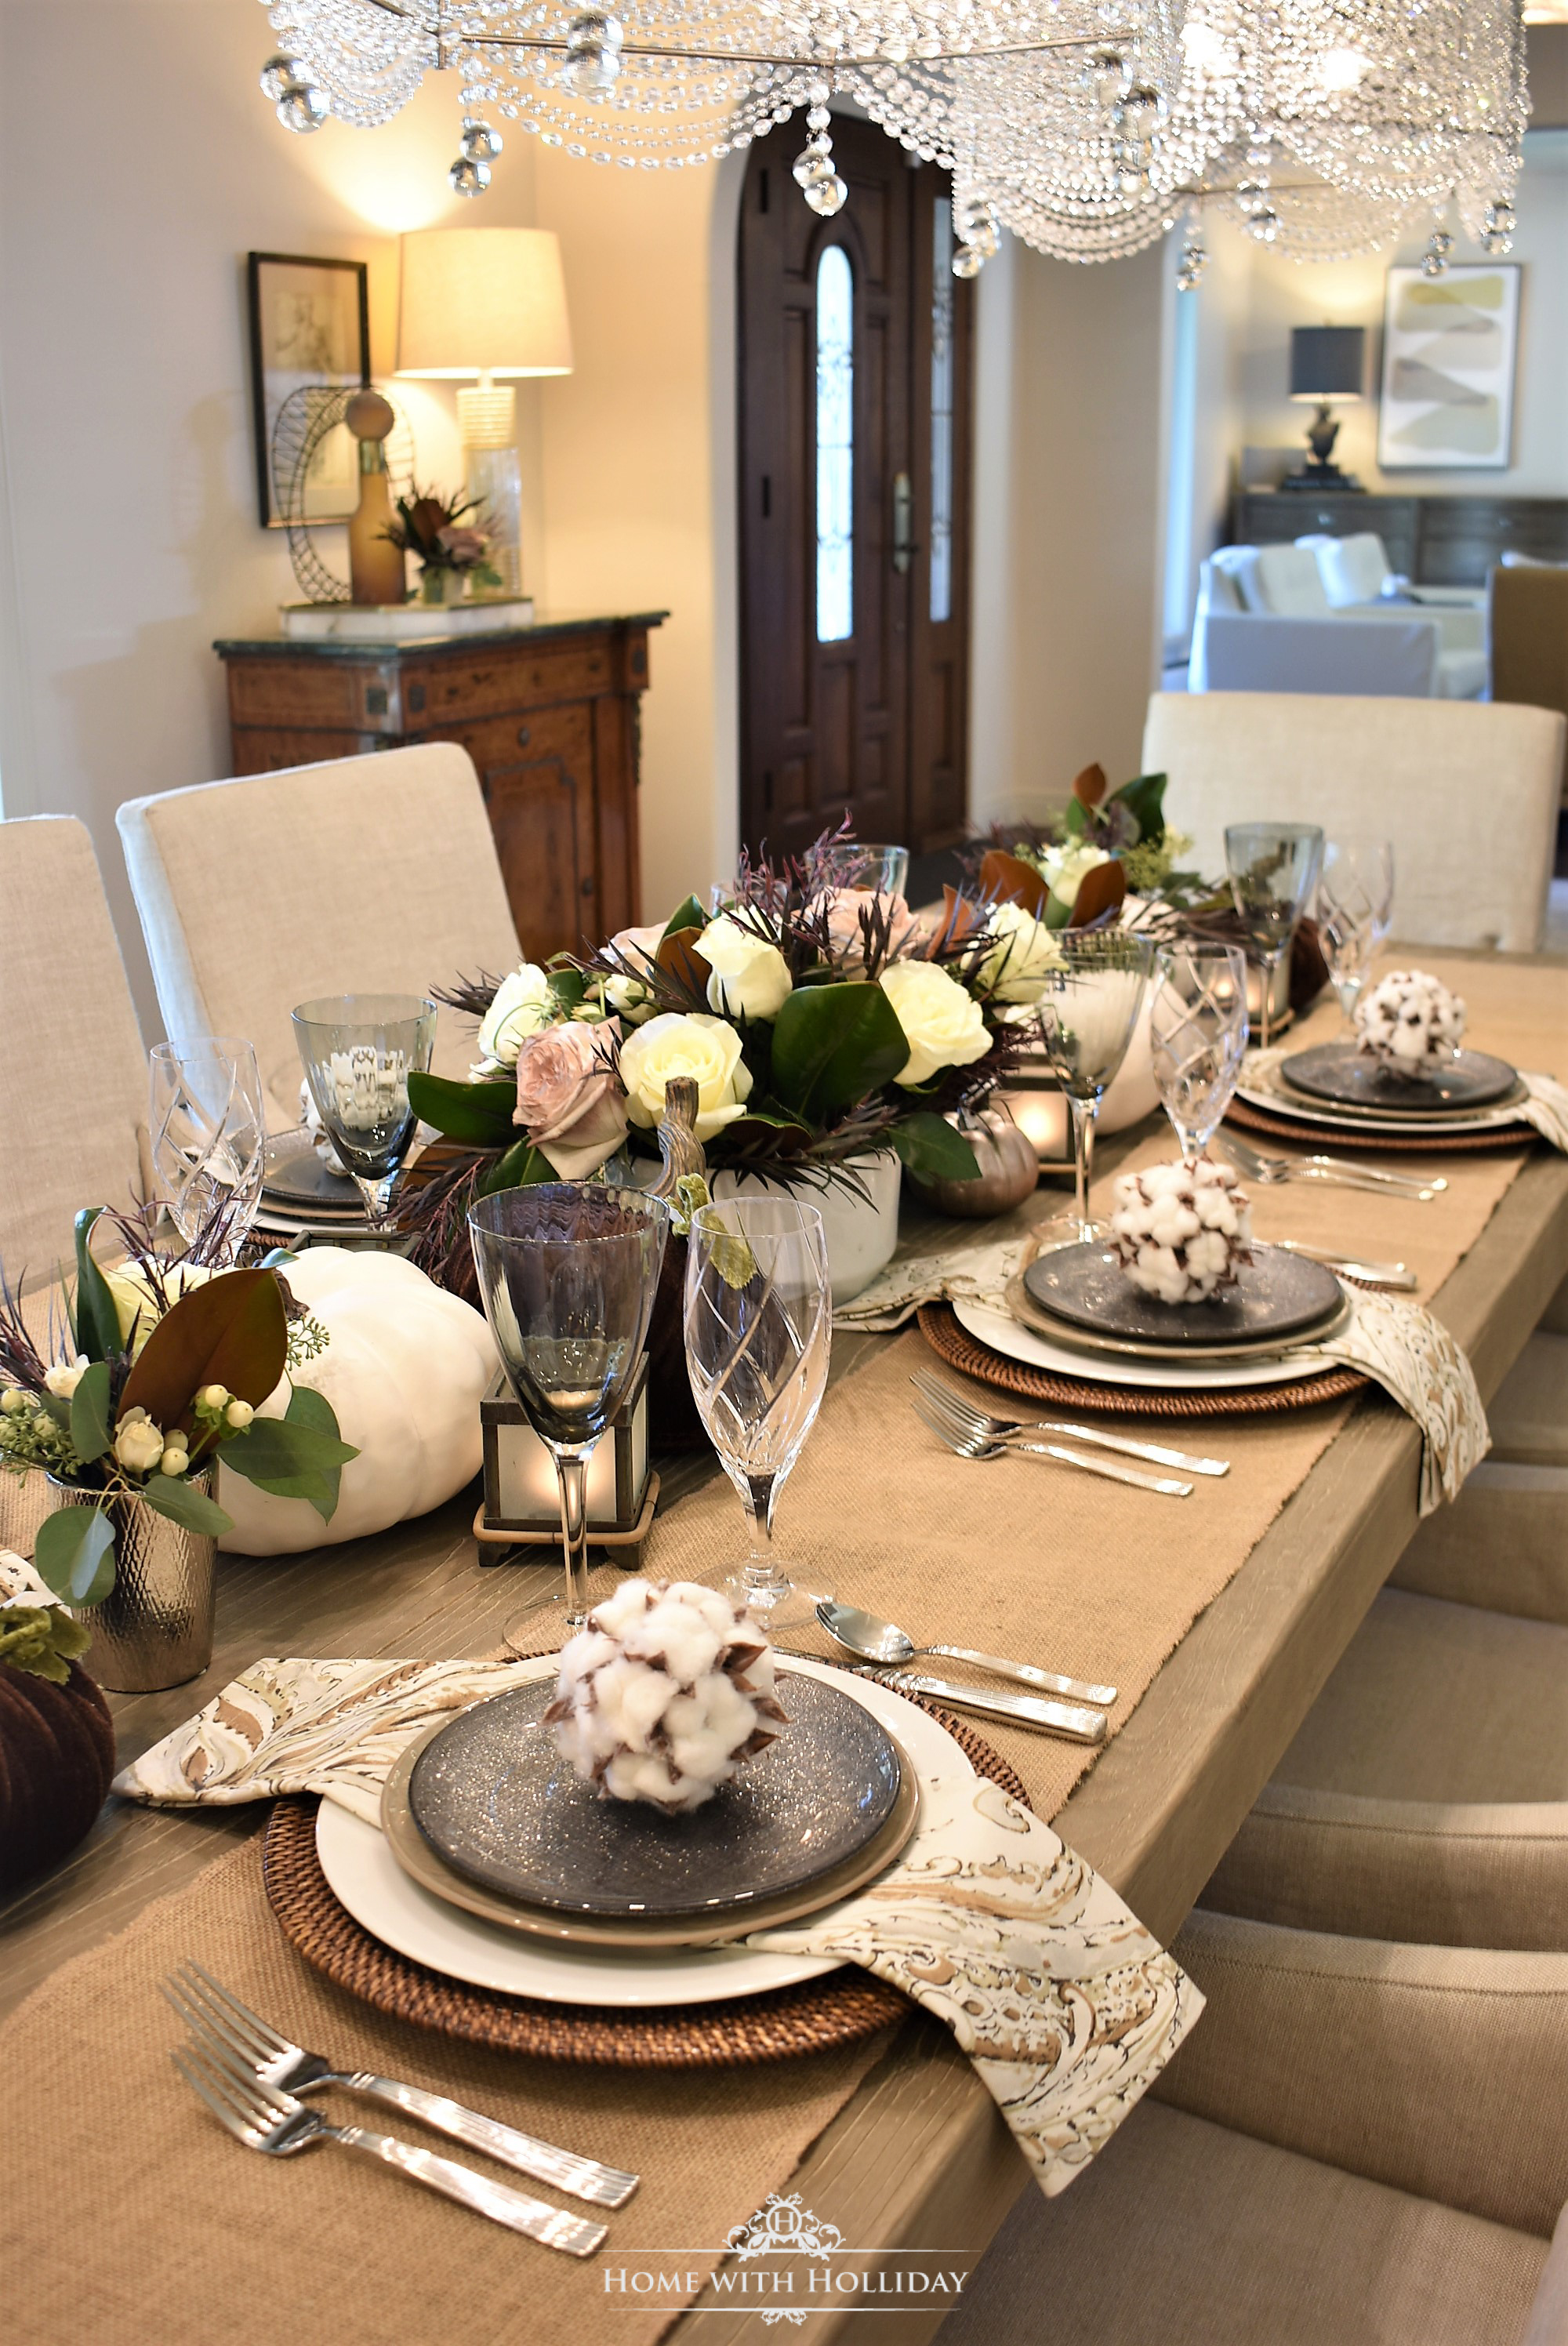 Centerpiece for a Fall Table Setting with Brown and White Pumpkins